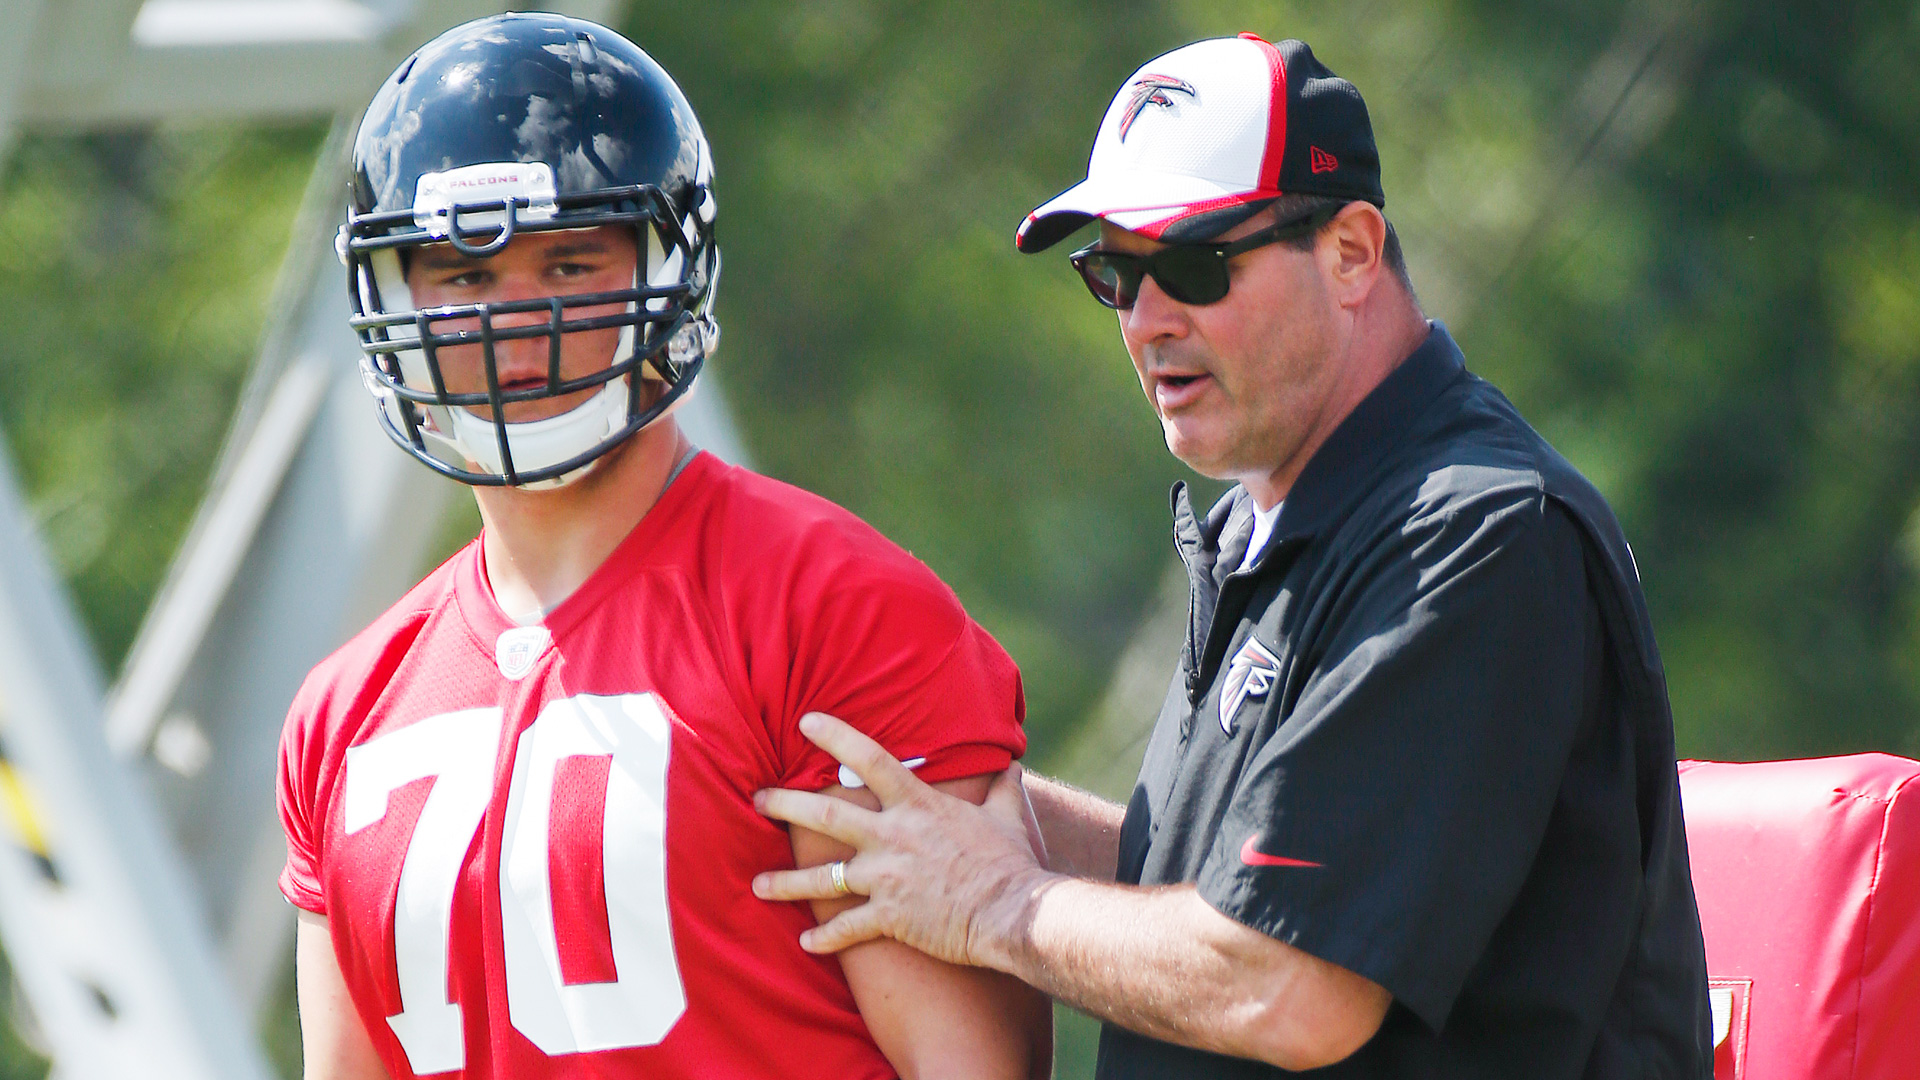 Falcons Jake Matthews shines on first day of rookie minicamp